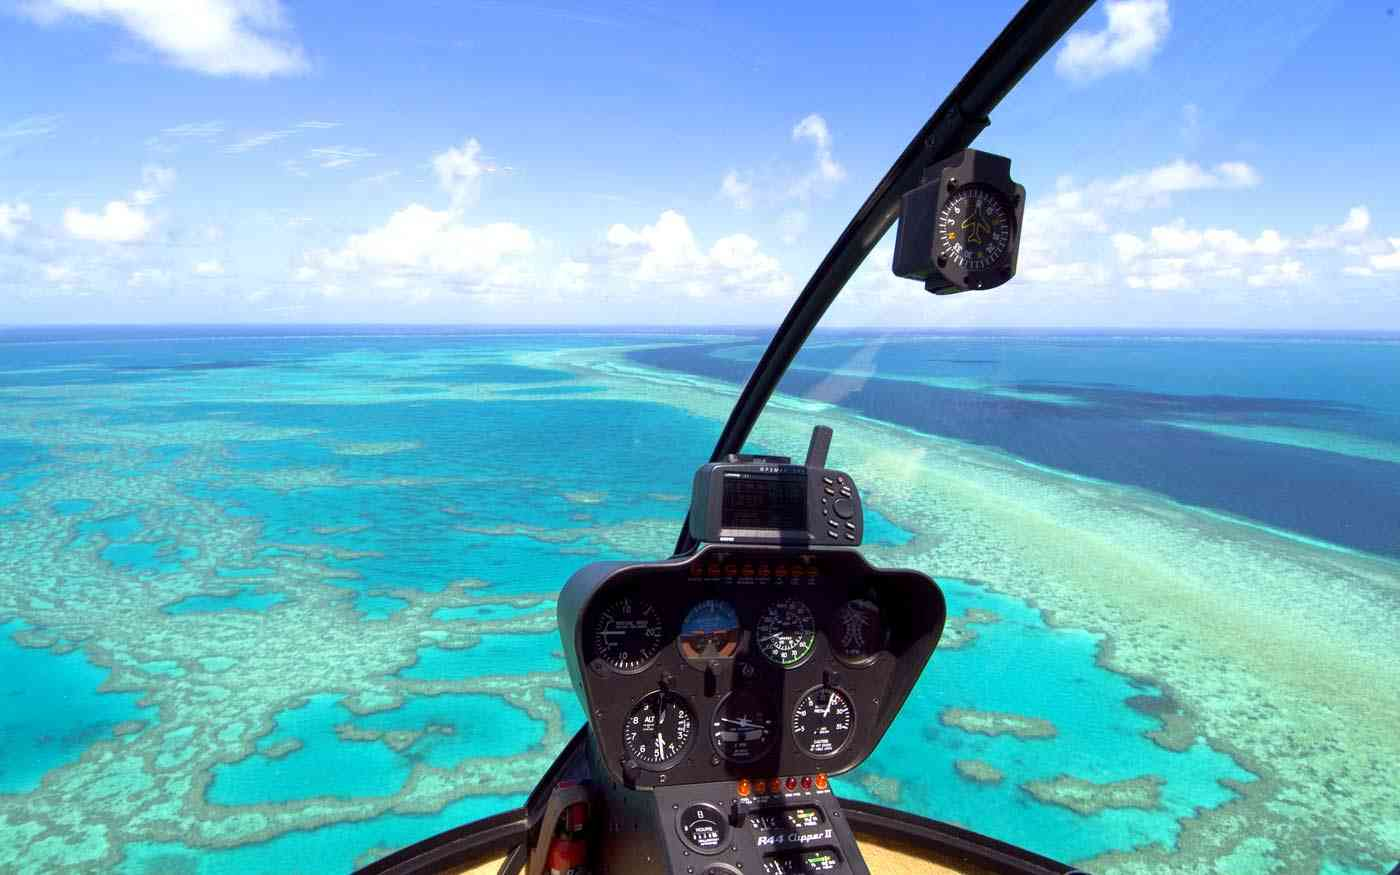 Overflying coral reefs